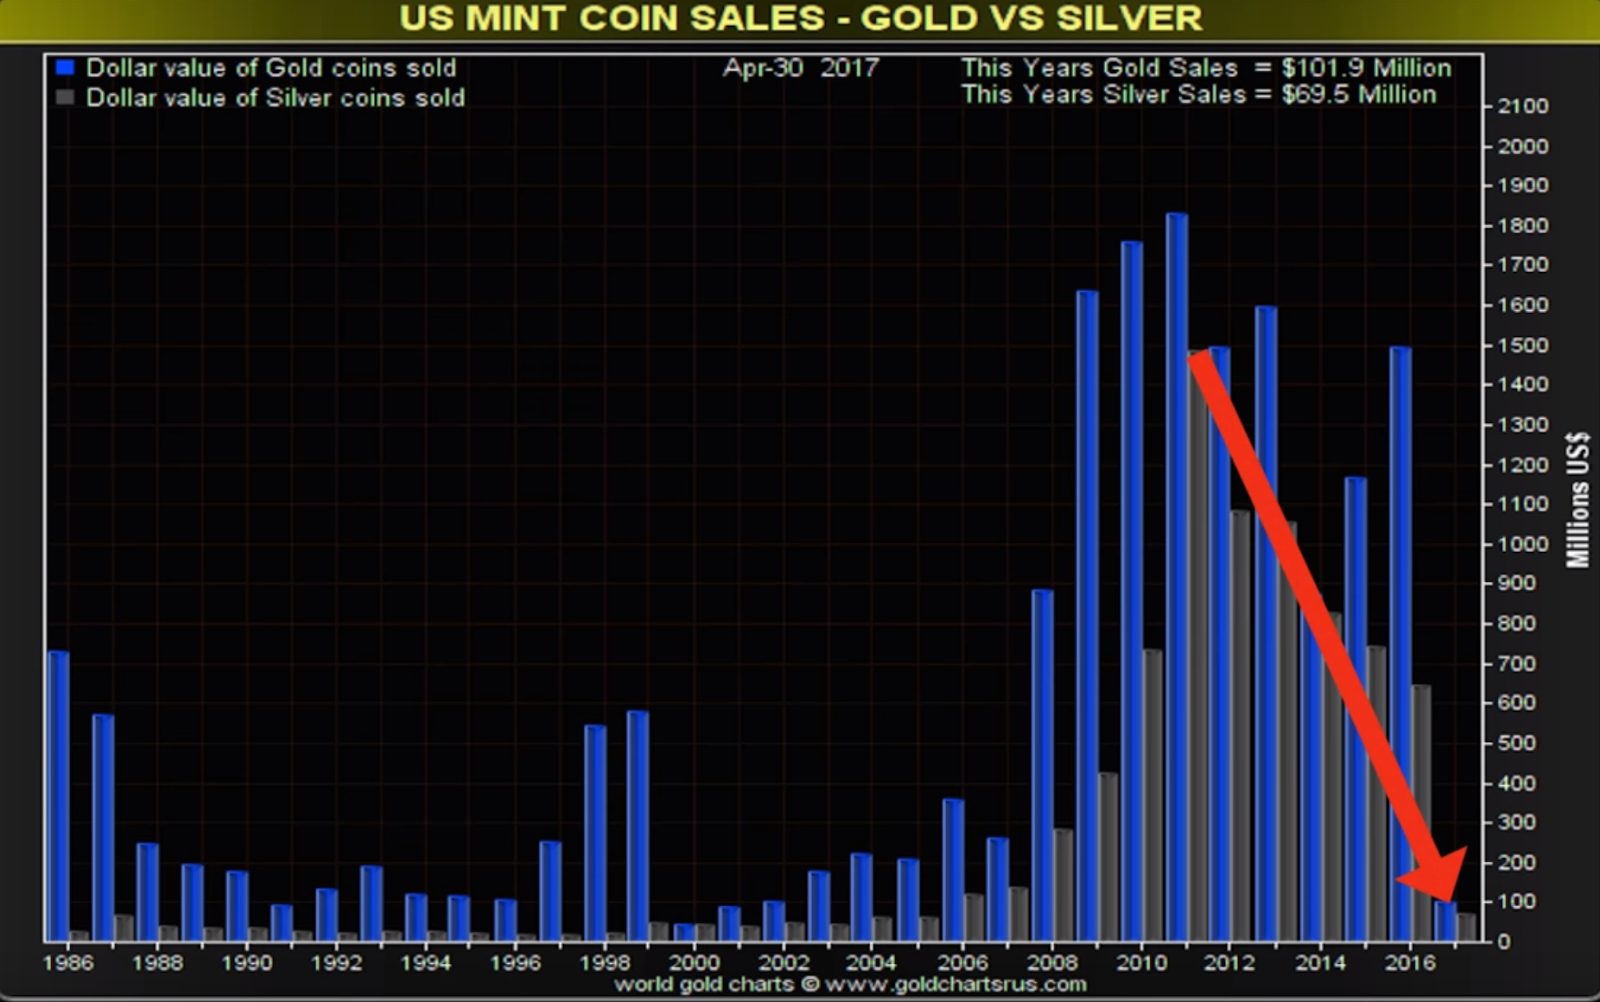 US Mint Coin Sales over time